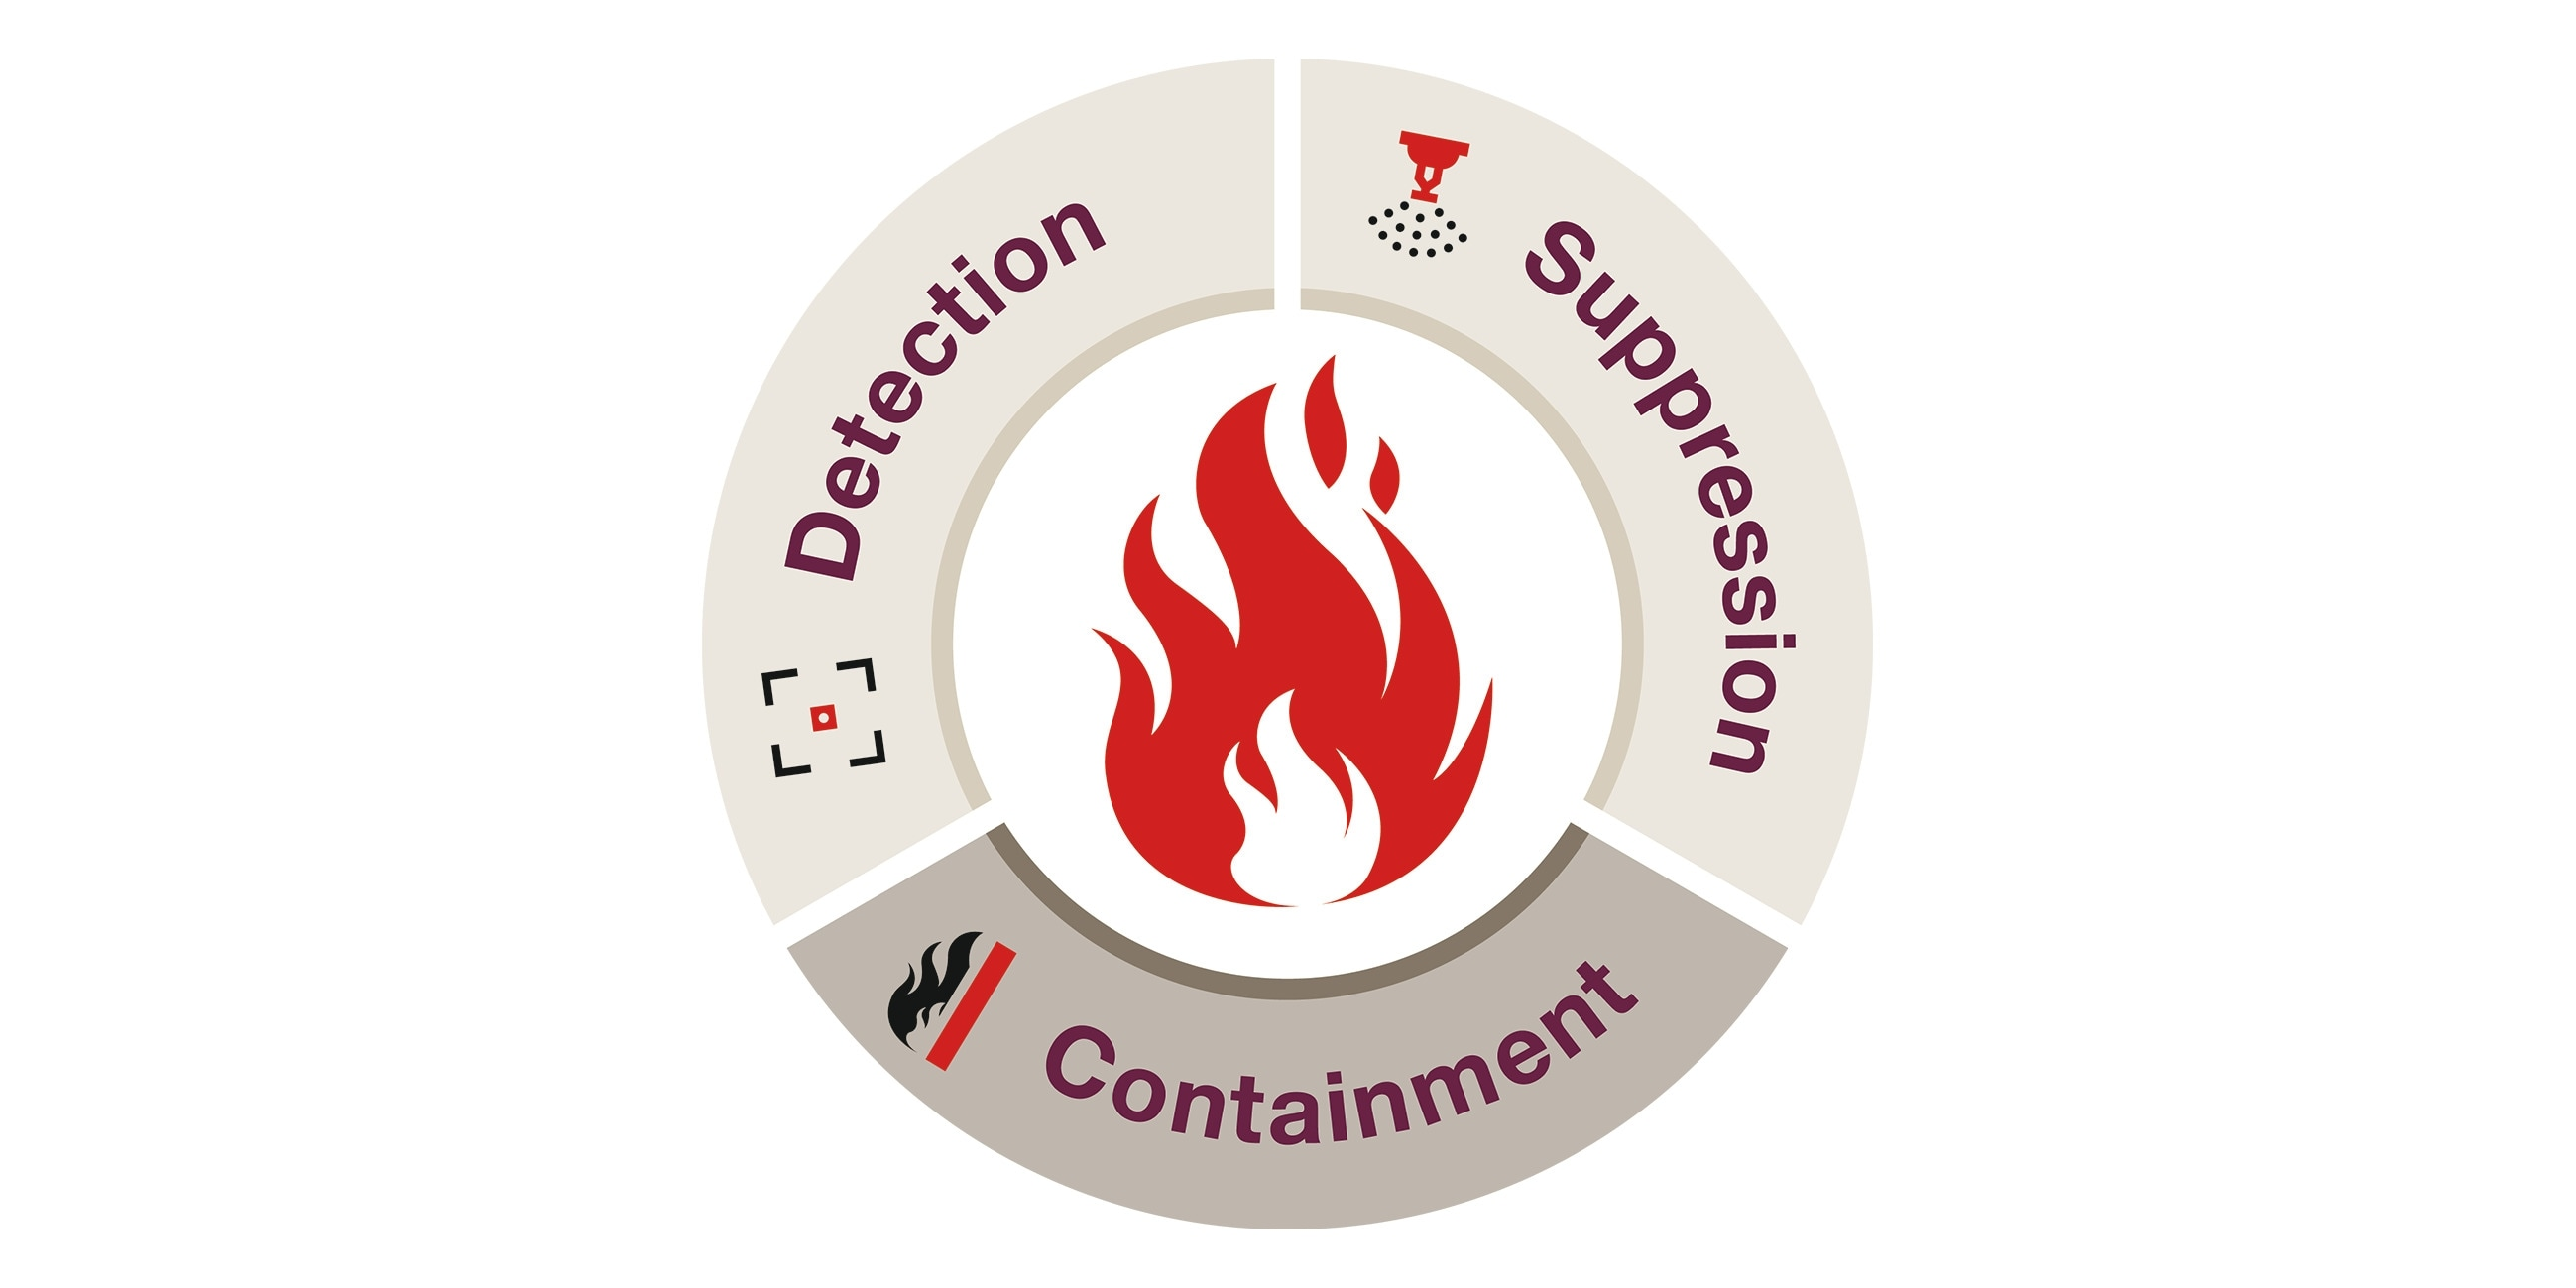 Active fire protection - including detection (e.g. alarms) and suppression (e.g. sprinklers) should also be combined with containment which can be achieved with passive fire protection.